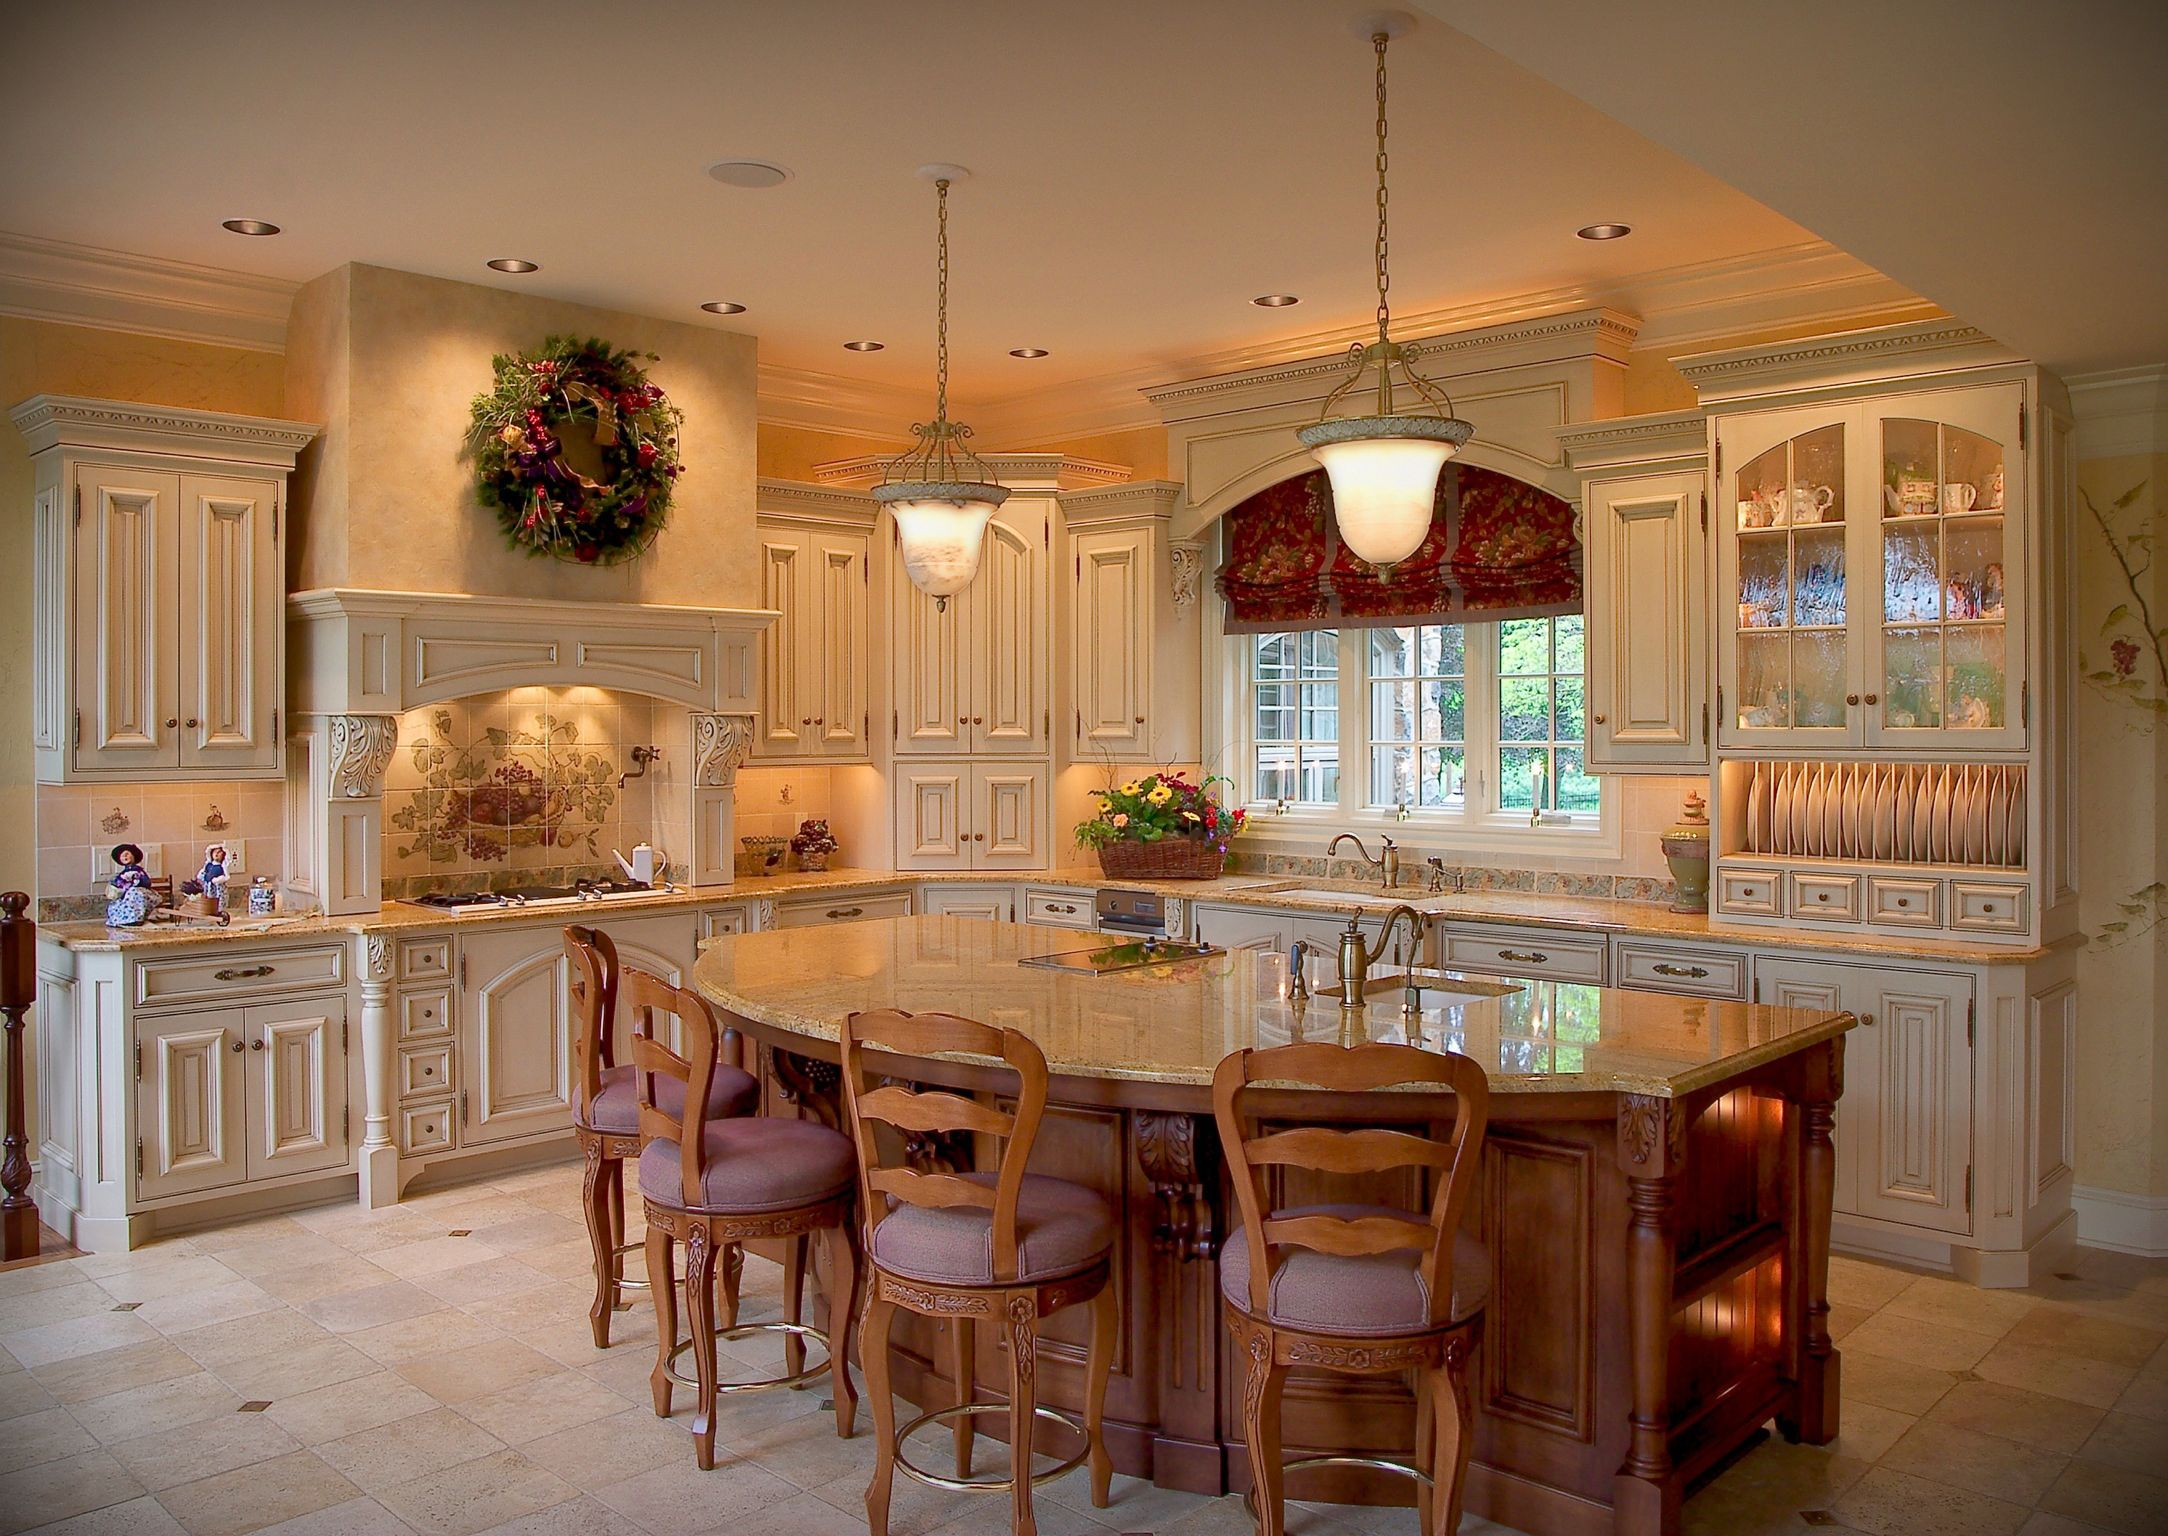 kitchen kitchen designs with islands Elegant Interior Kitchen Design With Luxury Islands Ideas For Modern Fascinating Kitchen Lay Out Wooden Kitchen Island With Granite Countertops And Seating